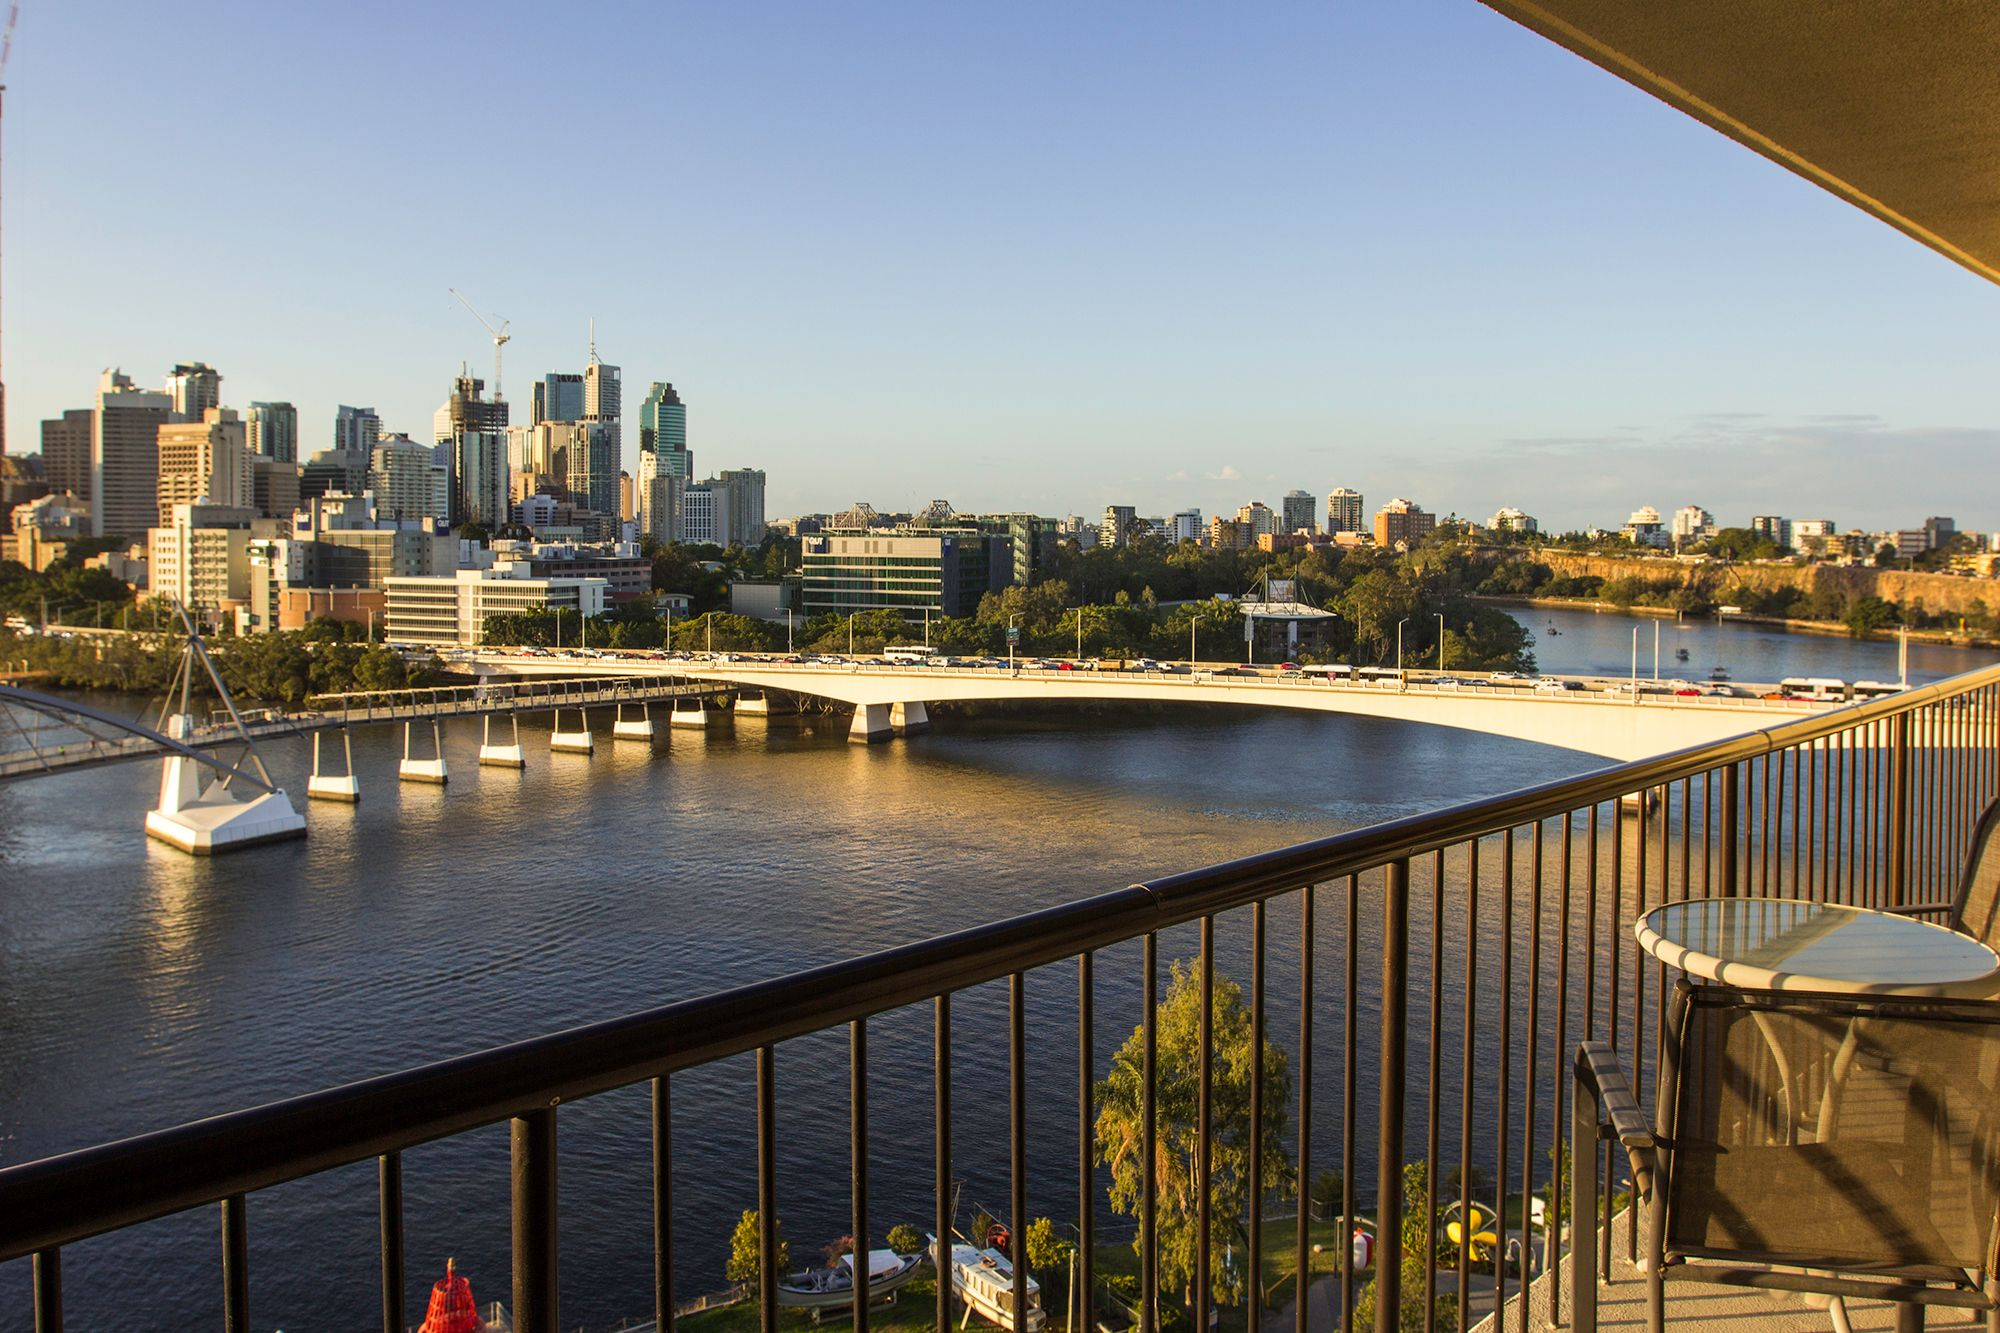 51/21 Dock Street South Brisbane 4101